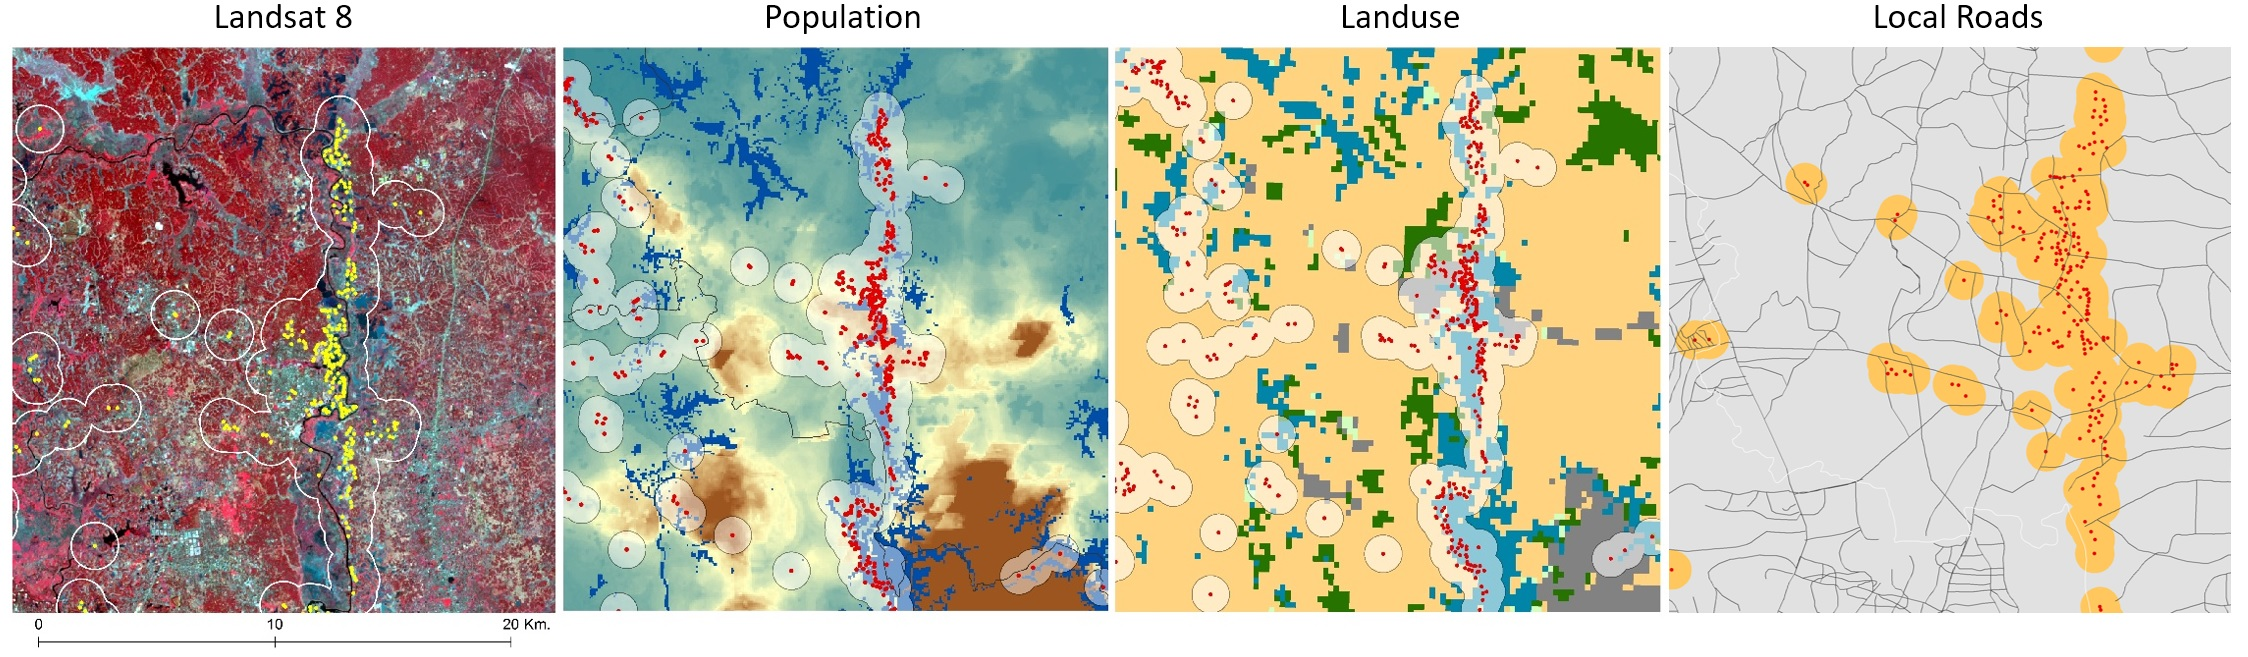 Figure 4: Zoomed-in illustration of select brickfields with 1 km. buffer overlaid on top of satellite image FCC,population grid and landuse grid; and with 0.5 km. buffer on top of local roads (respectively from left to right).